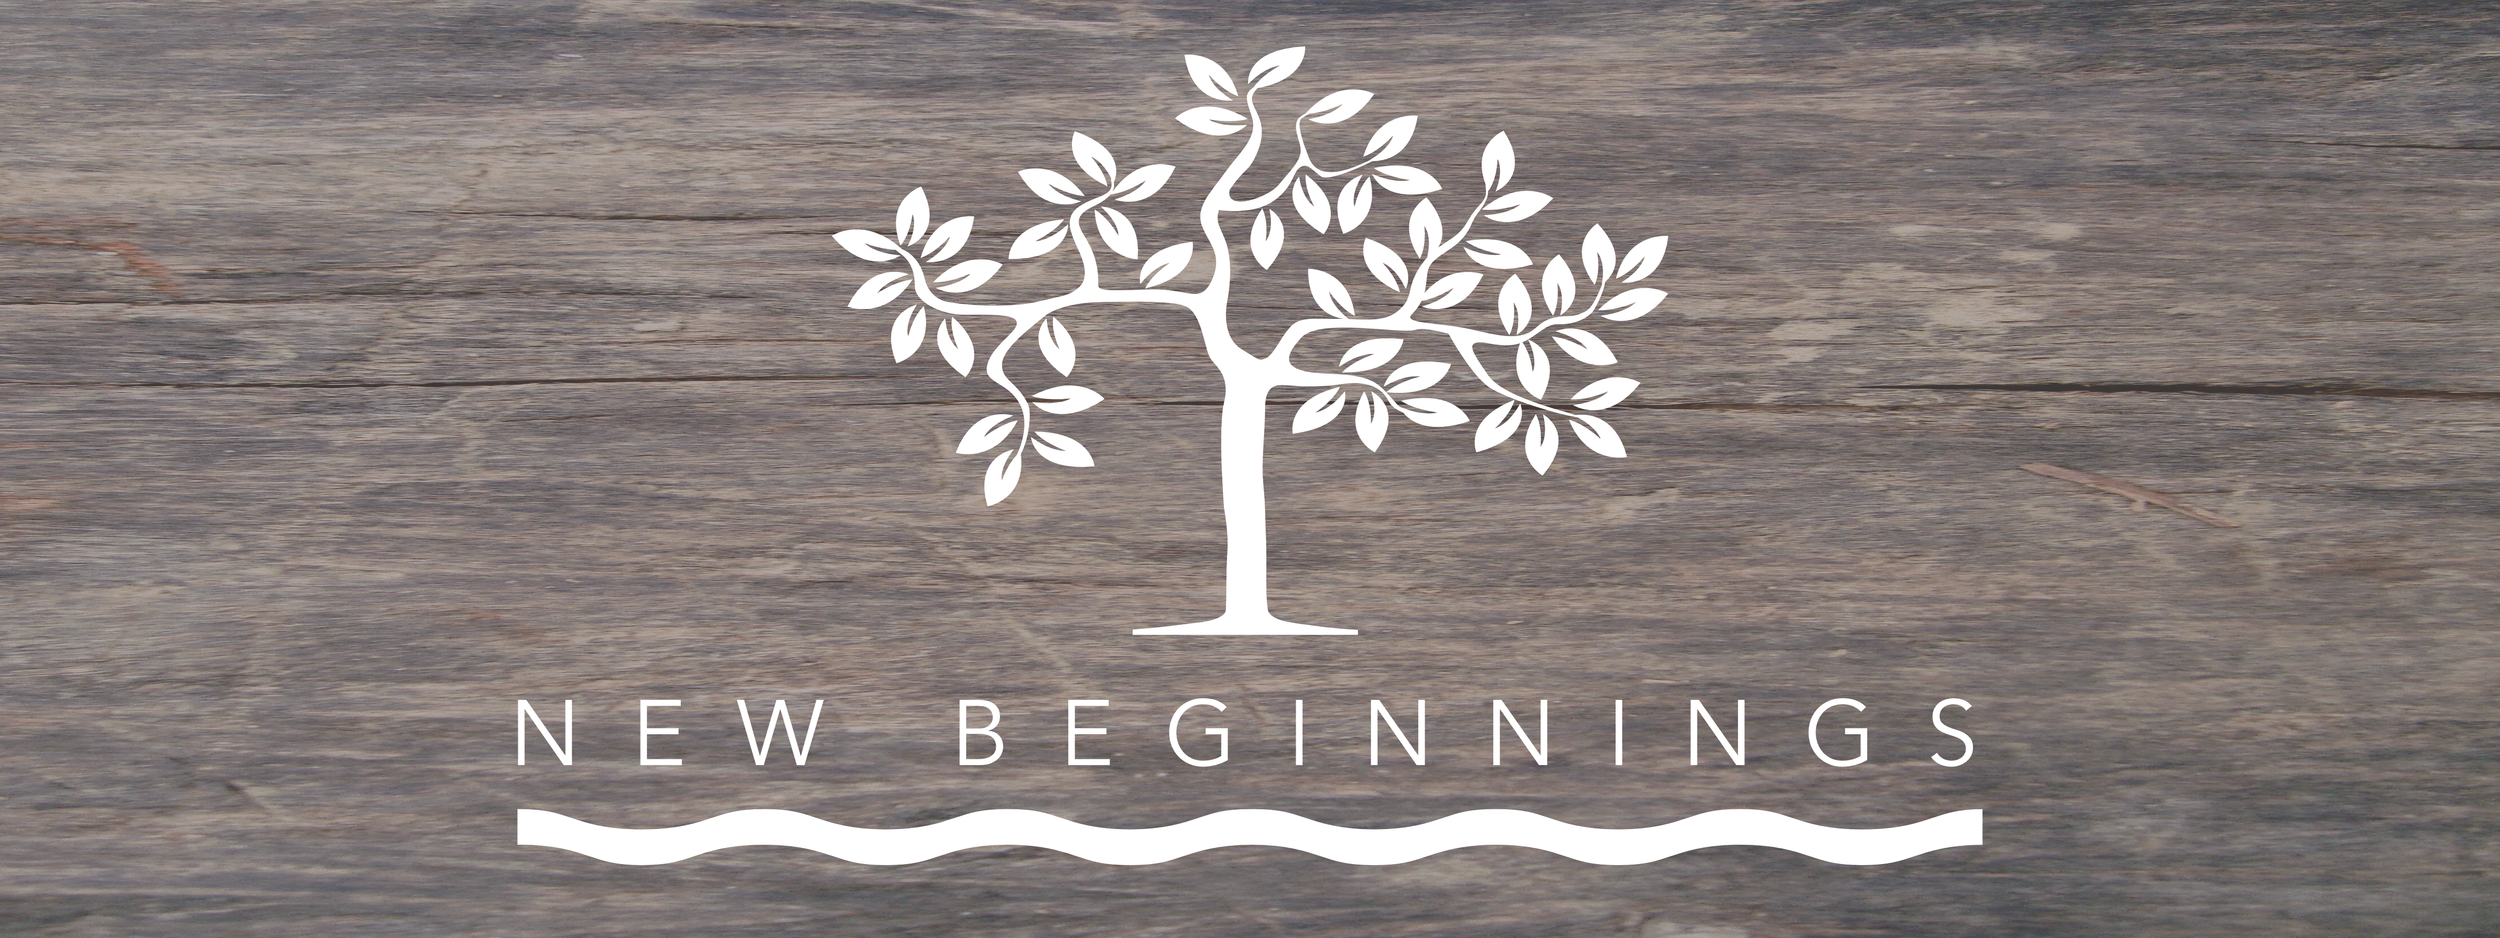 The next new beginnings is May 5 after worship. To let us know your interested email the church office.